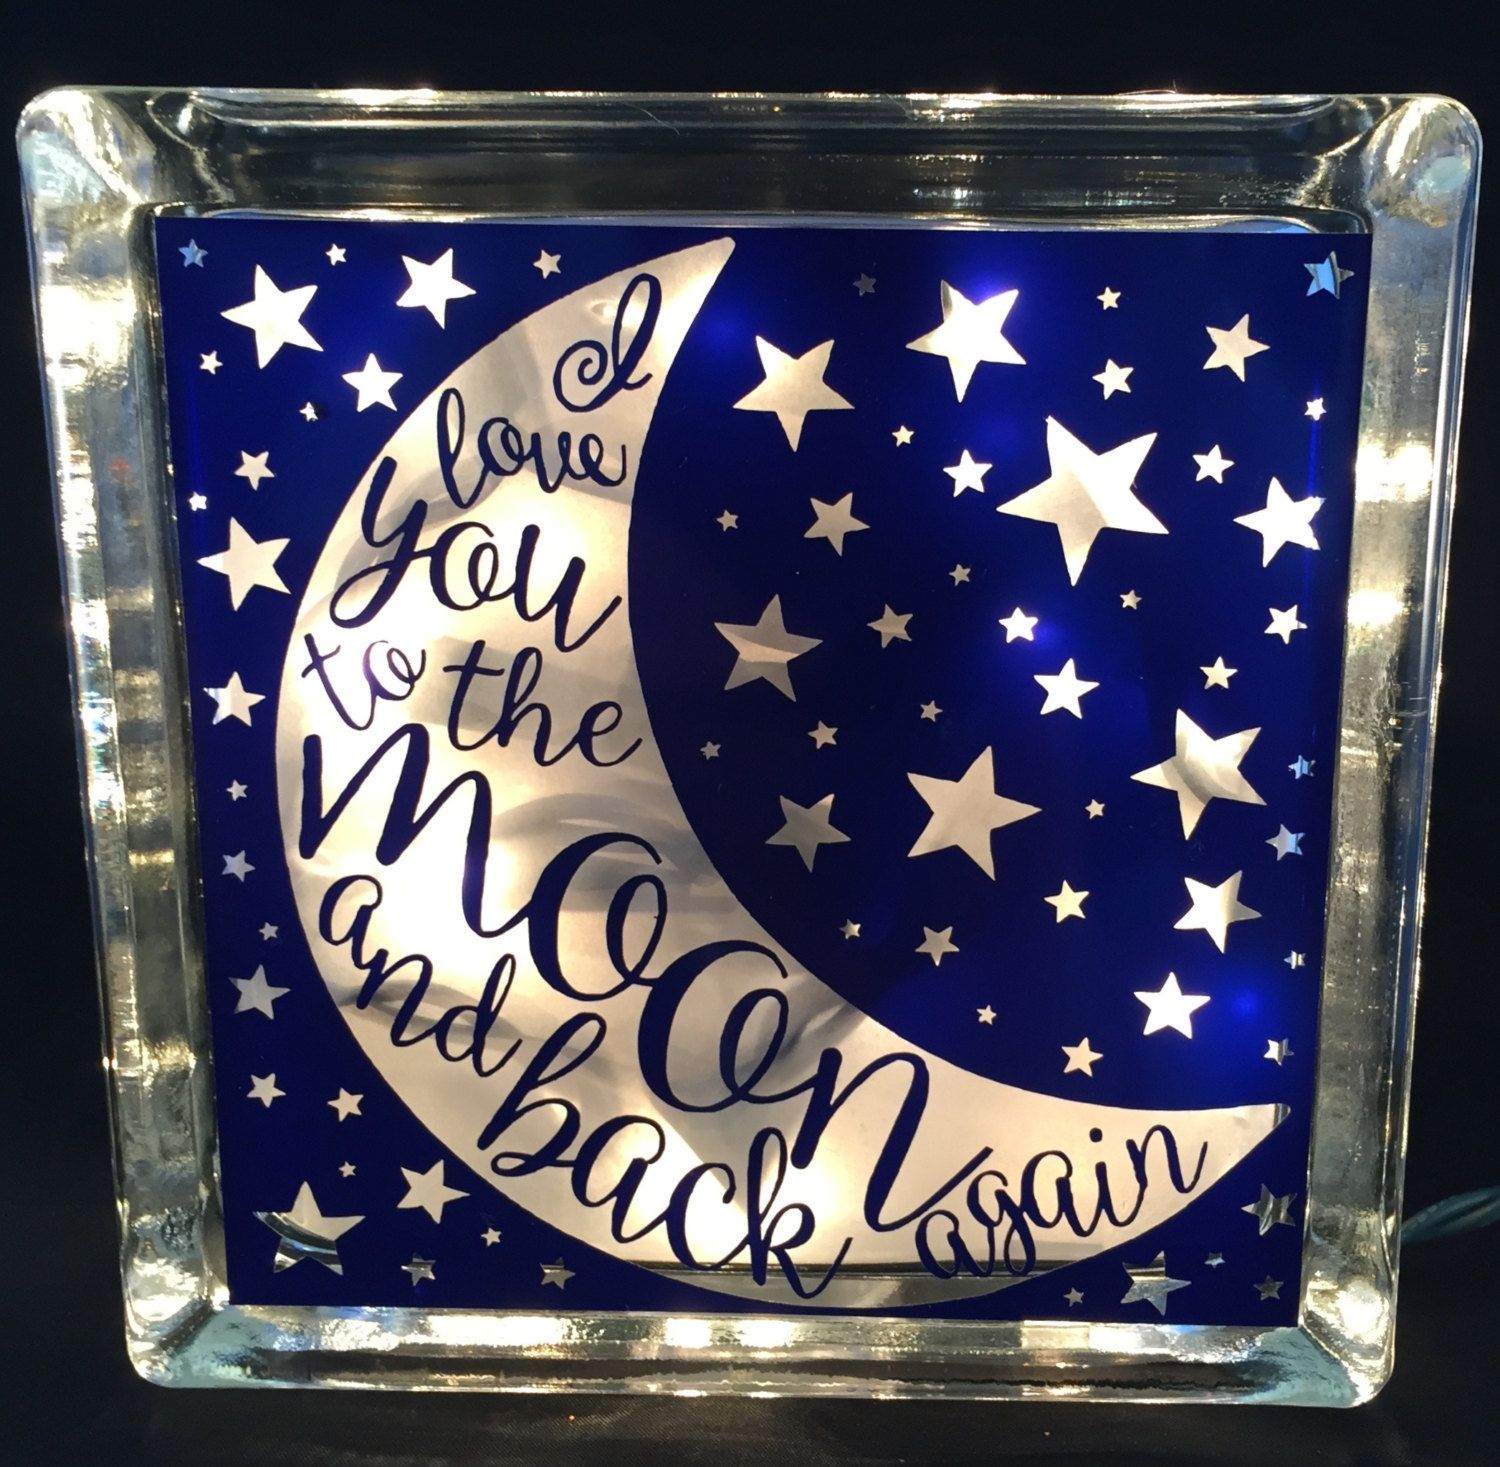 Deco Block Ideas Glass Block Night Light Quoti Love You To The Moon And Back